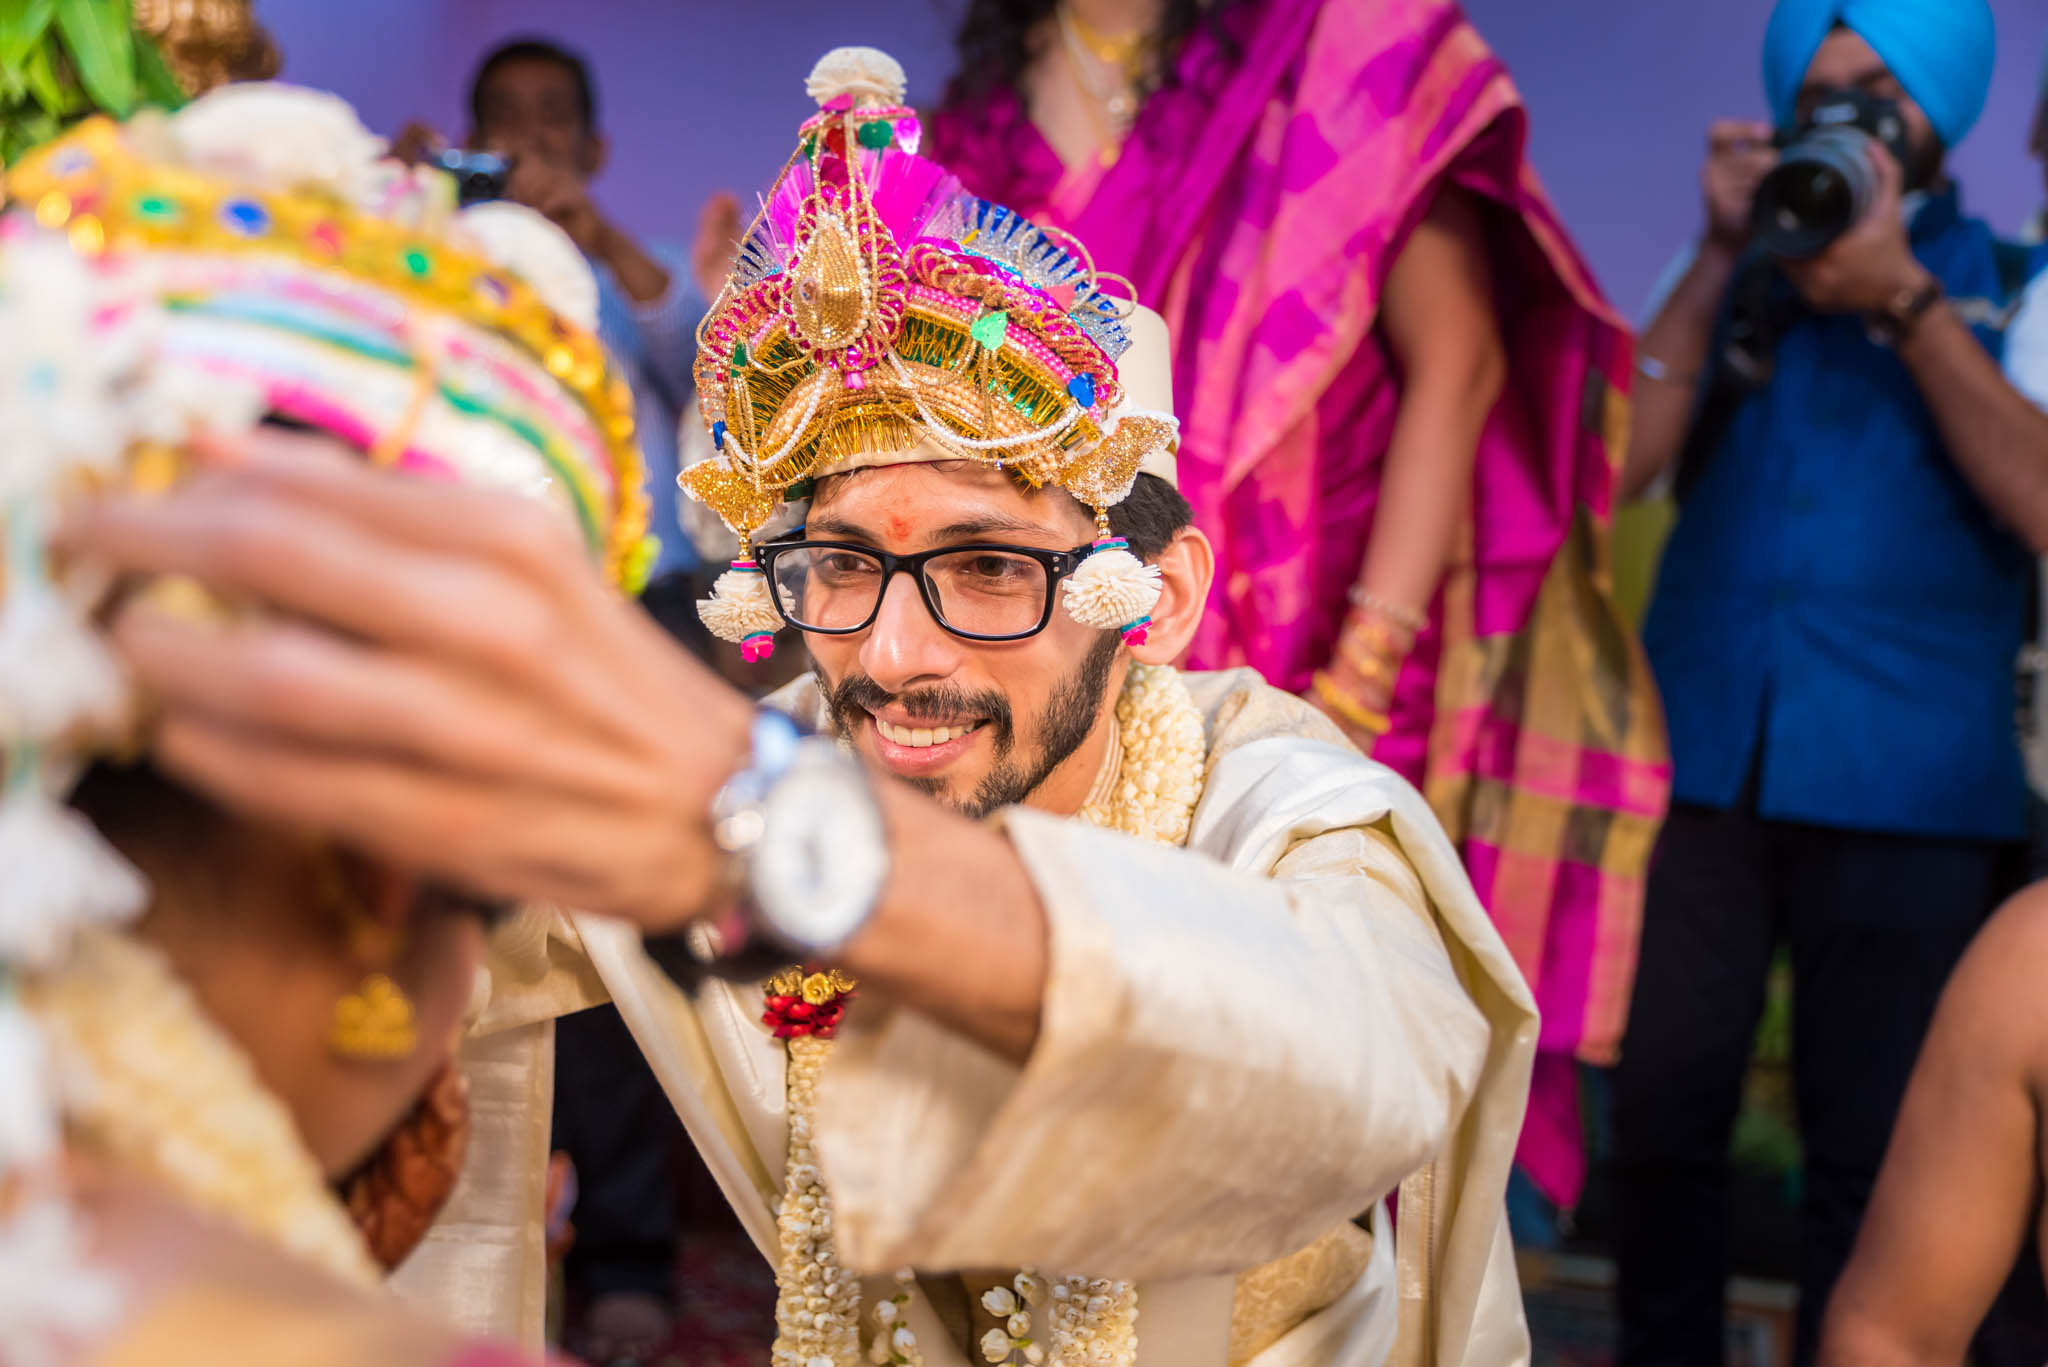 WhatKnot-Candid-Wedding-Photography-Mumbai-Bangalore-180